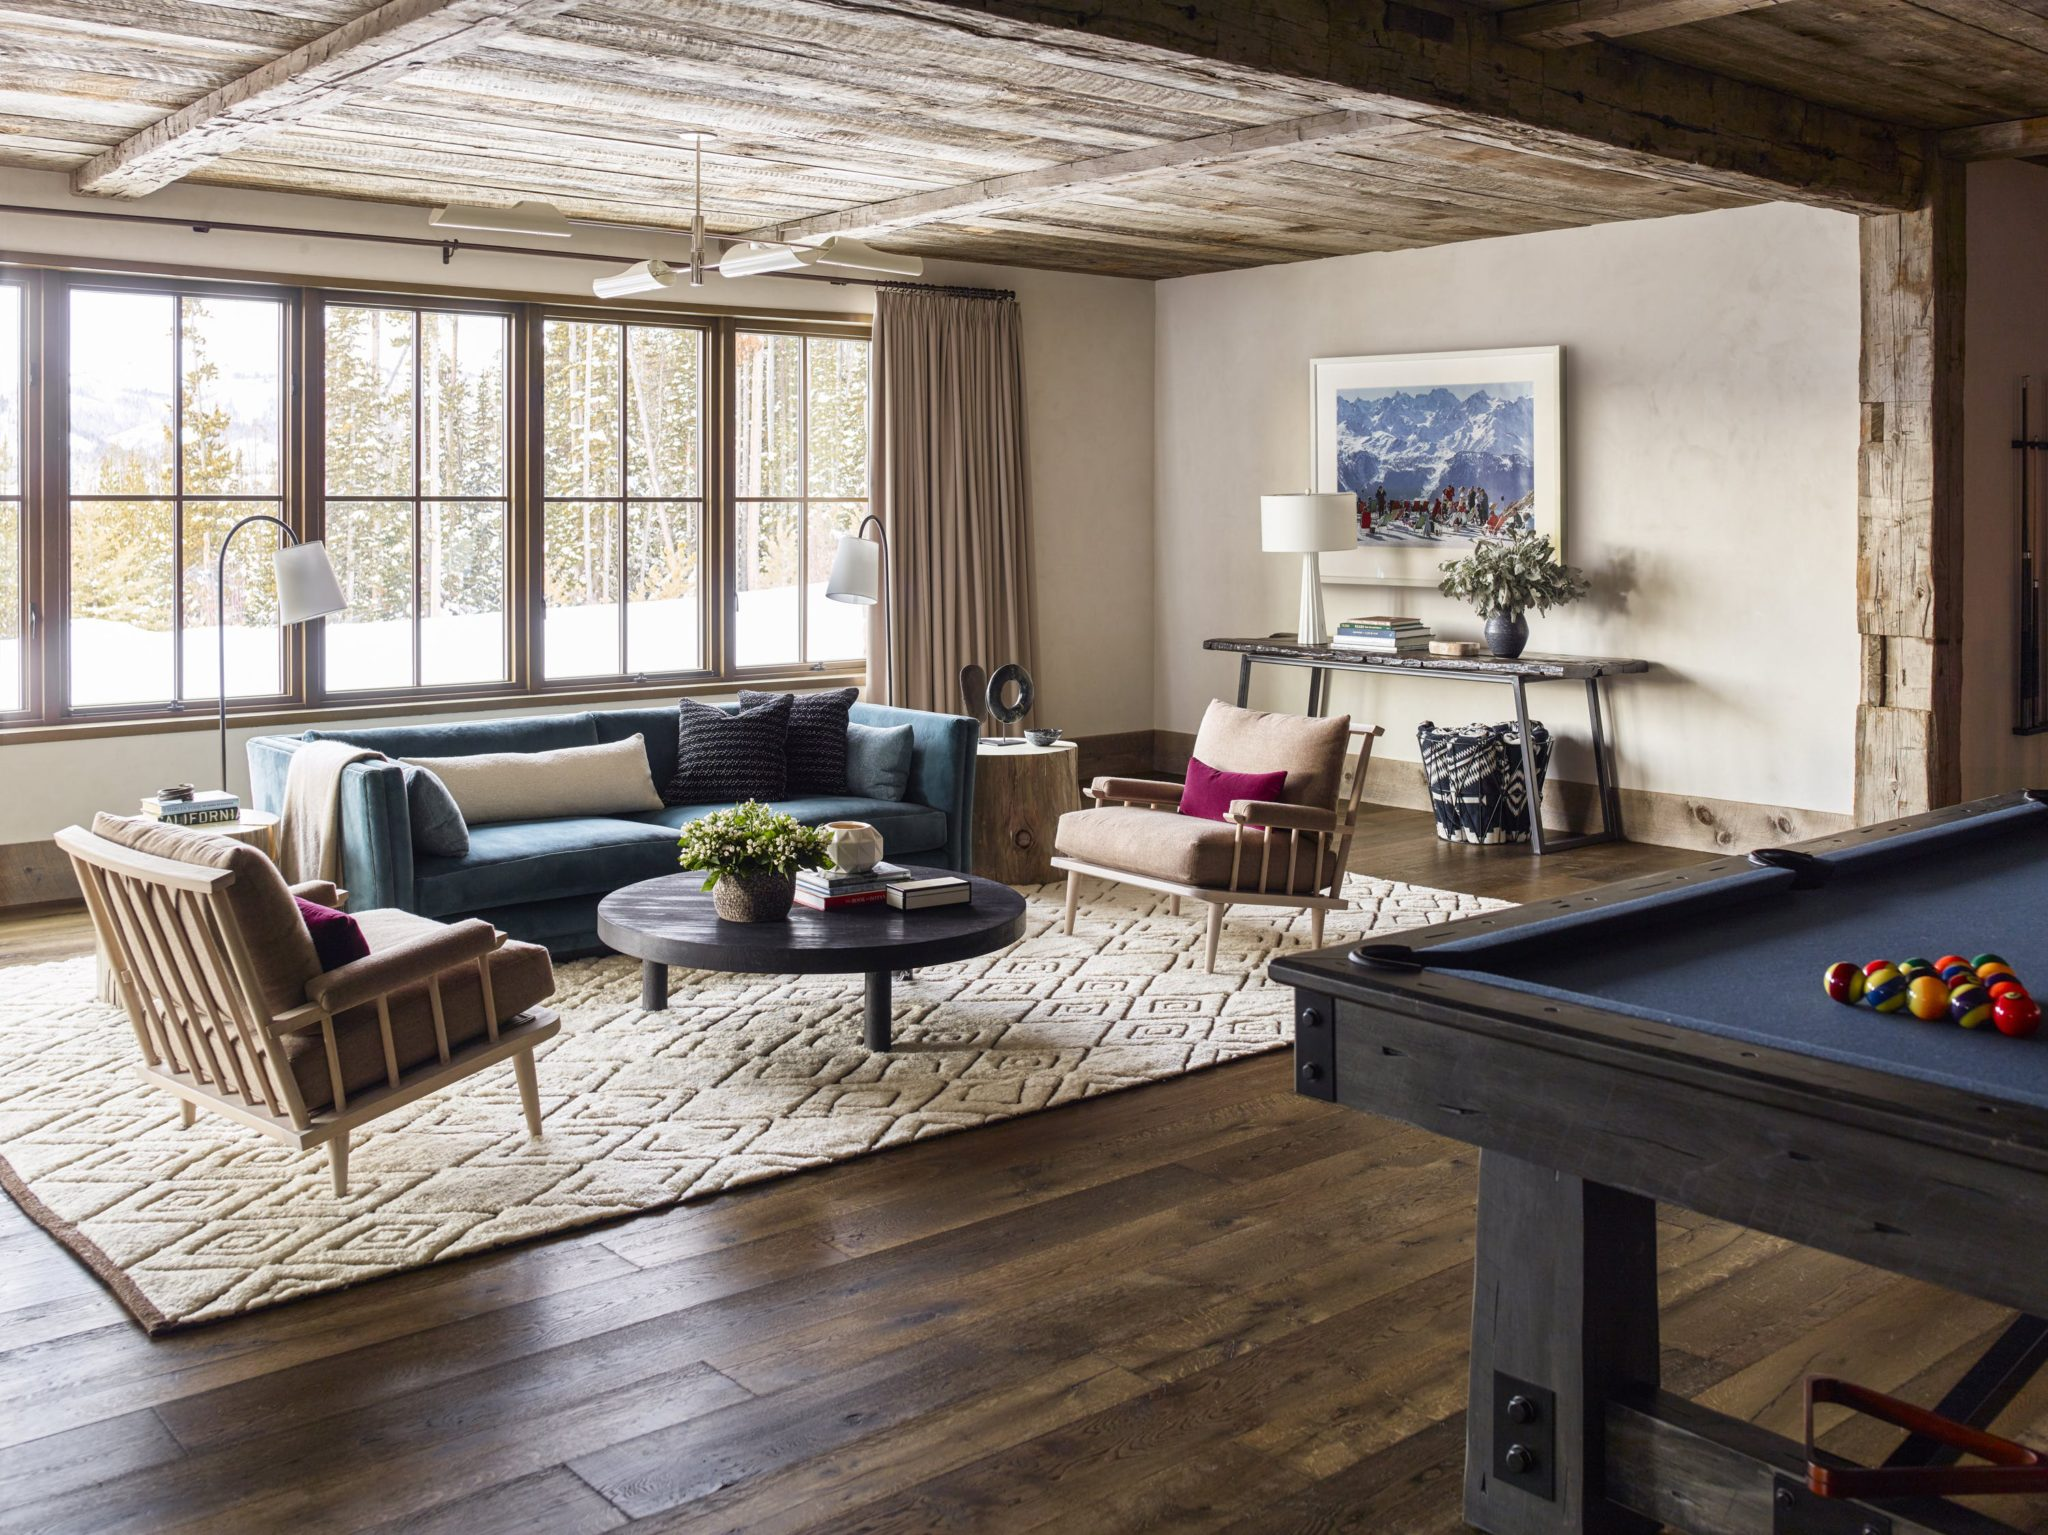 Enter the rec room, where a stylish pool table creates another great space for entertaining — as does the plush seating designed by Nickey Kehoe. The geometric rug from Stark brings texture to the space, while the pendant from David Weeks Studio and table lamp from GT Atelier add a modern touch.